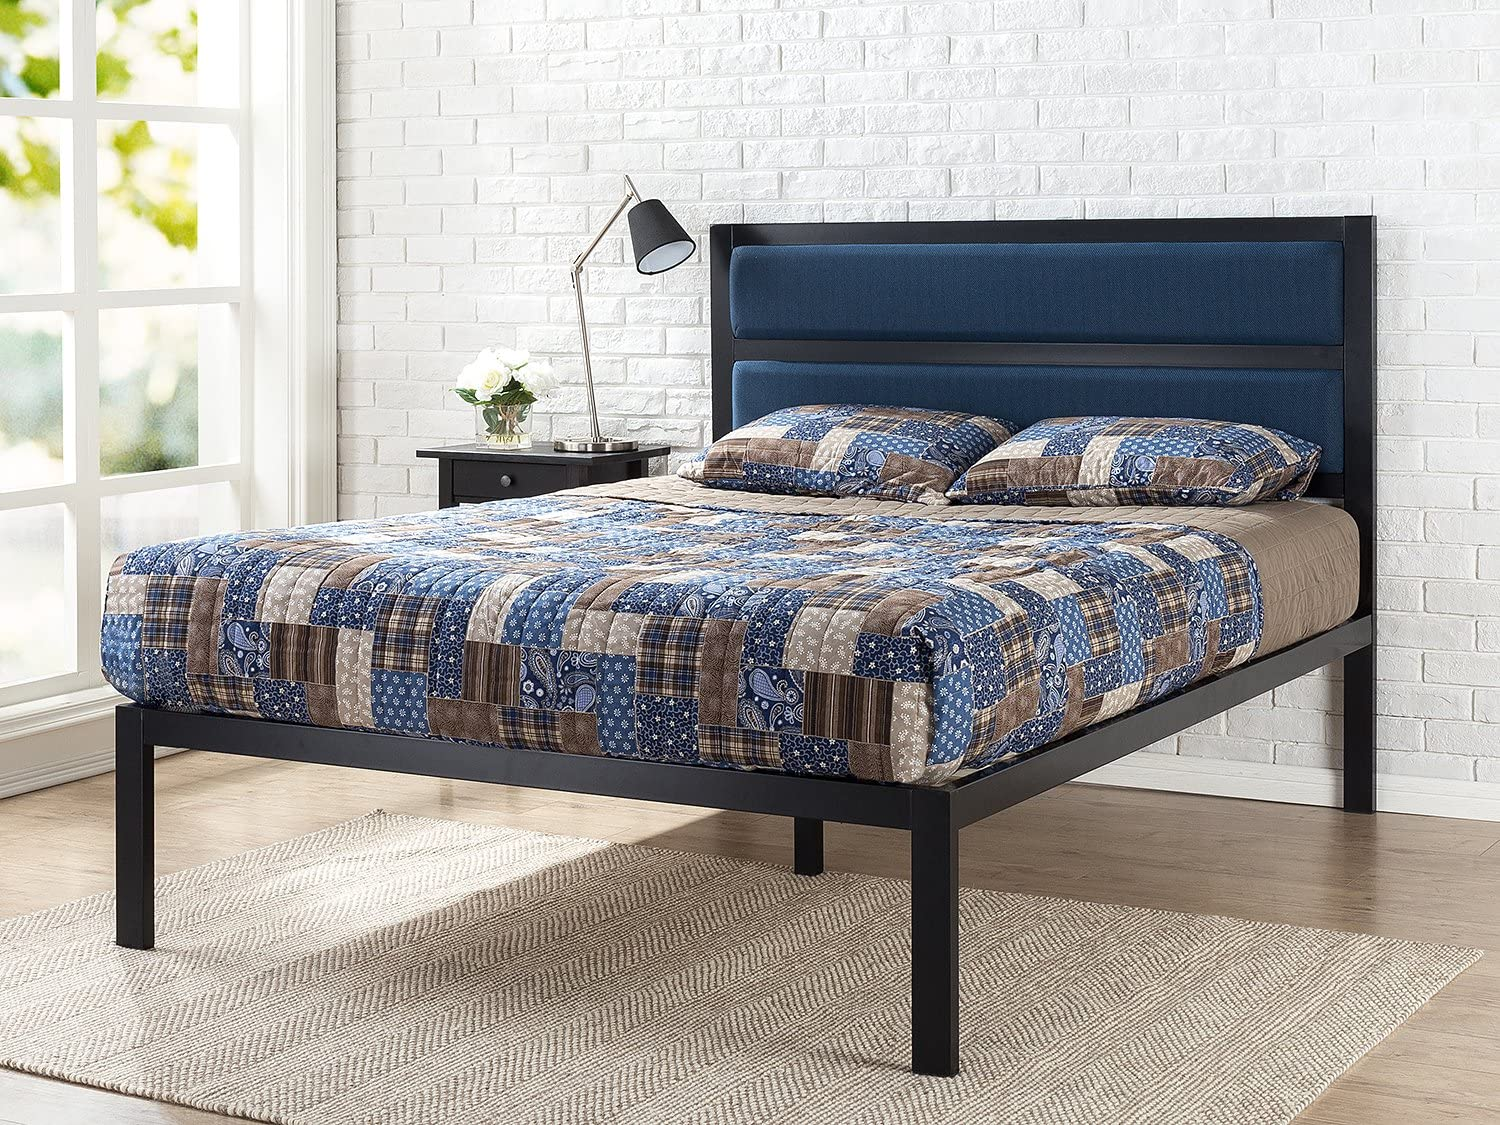 Zinus 16 Inch Platform Bed Metal Bed Frame Mattress Foundation with Tufted Navy Panel Headboard No Box Spring Needed Wood Slat Support, Full